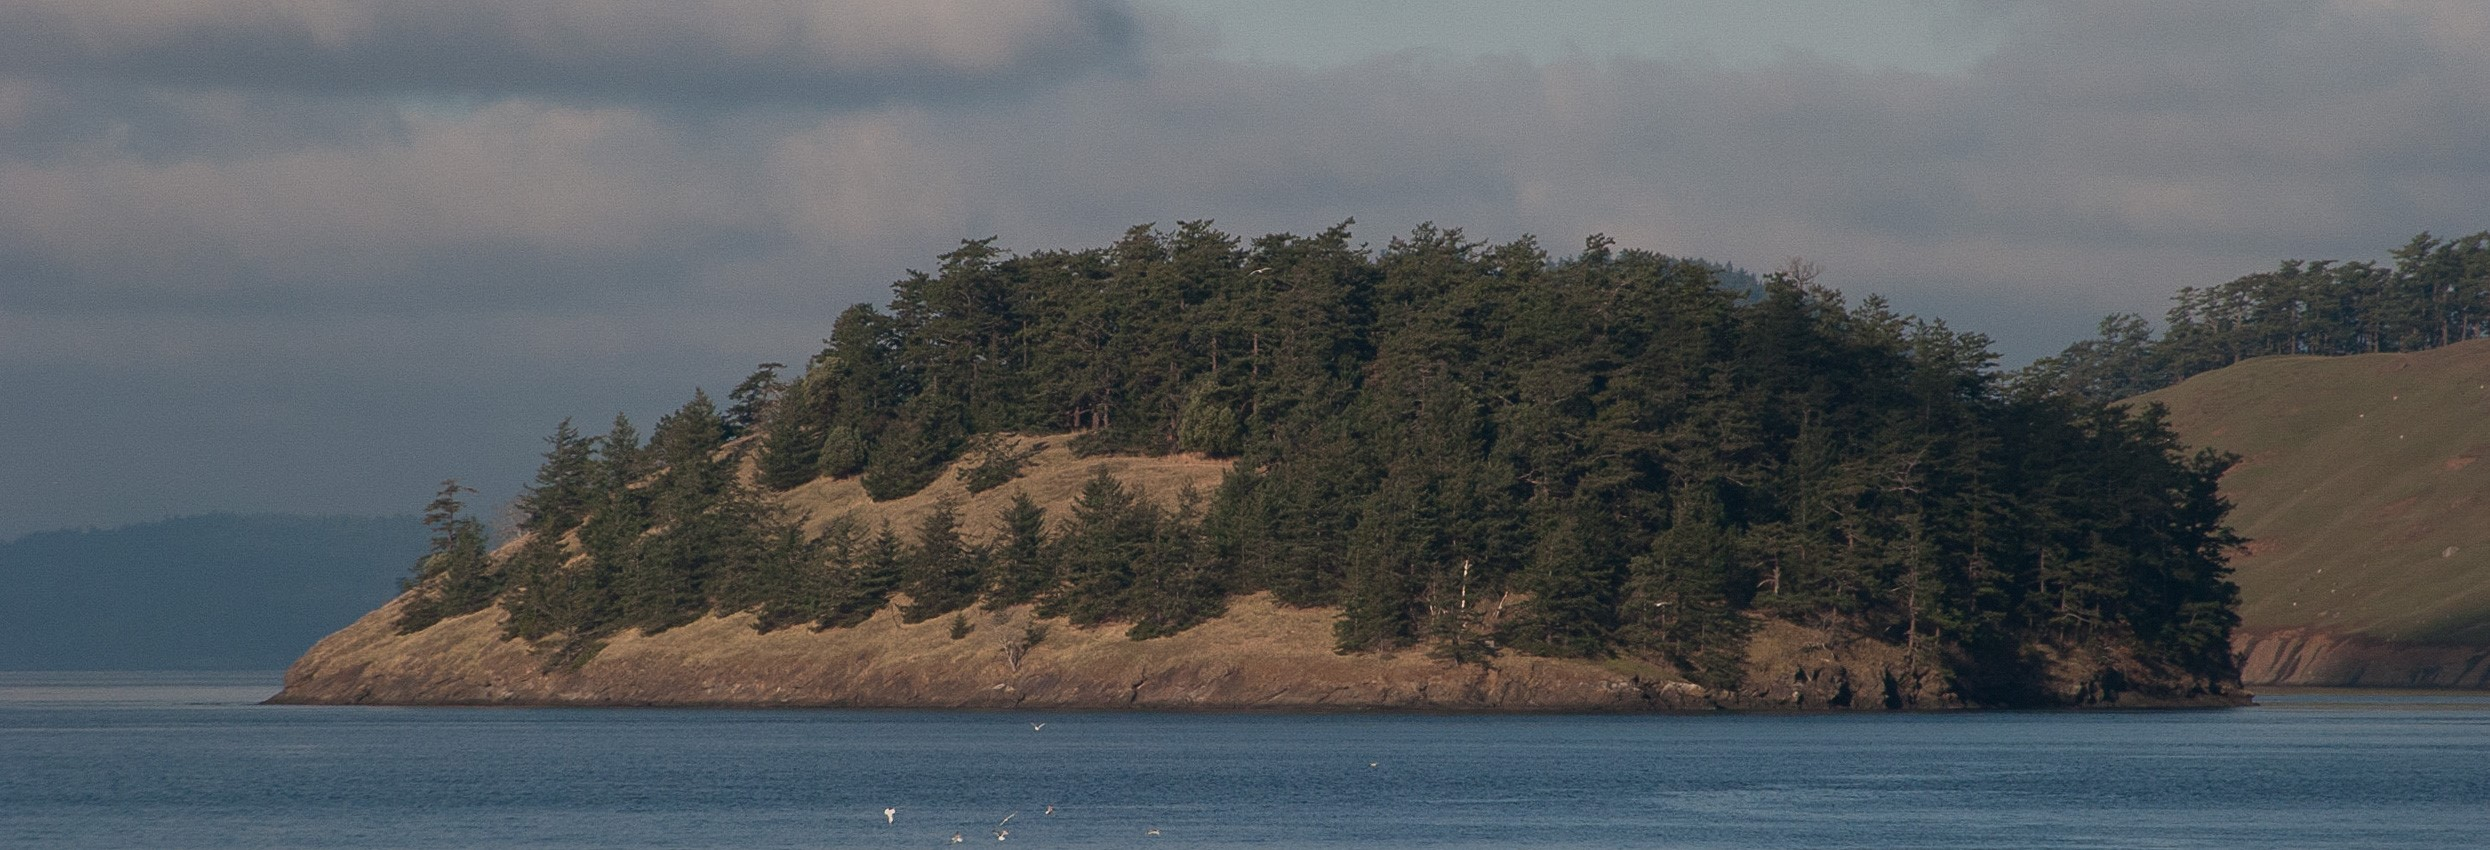 Sentinel Island 2007 with a line of young Douglas firs along the base of the meadow.Photo © Phil Green / TNC